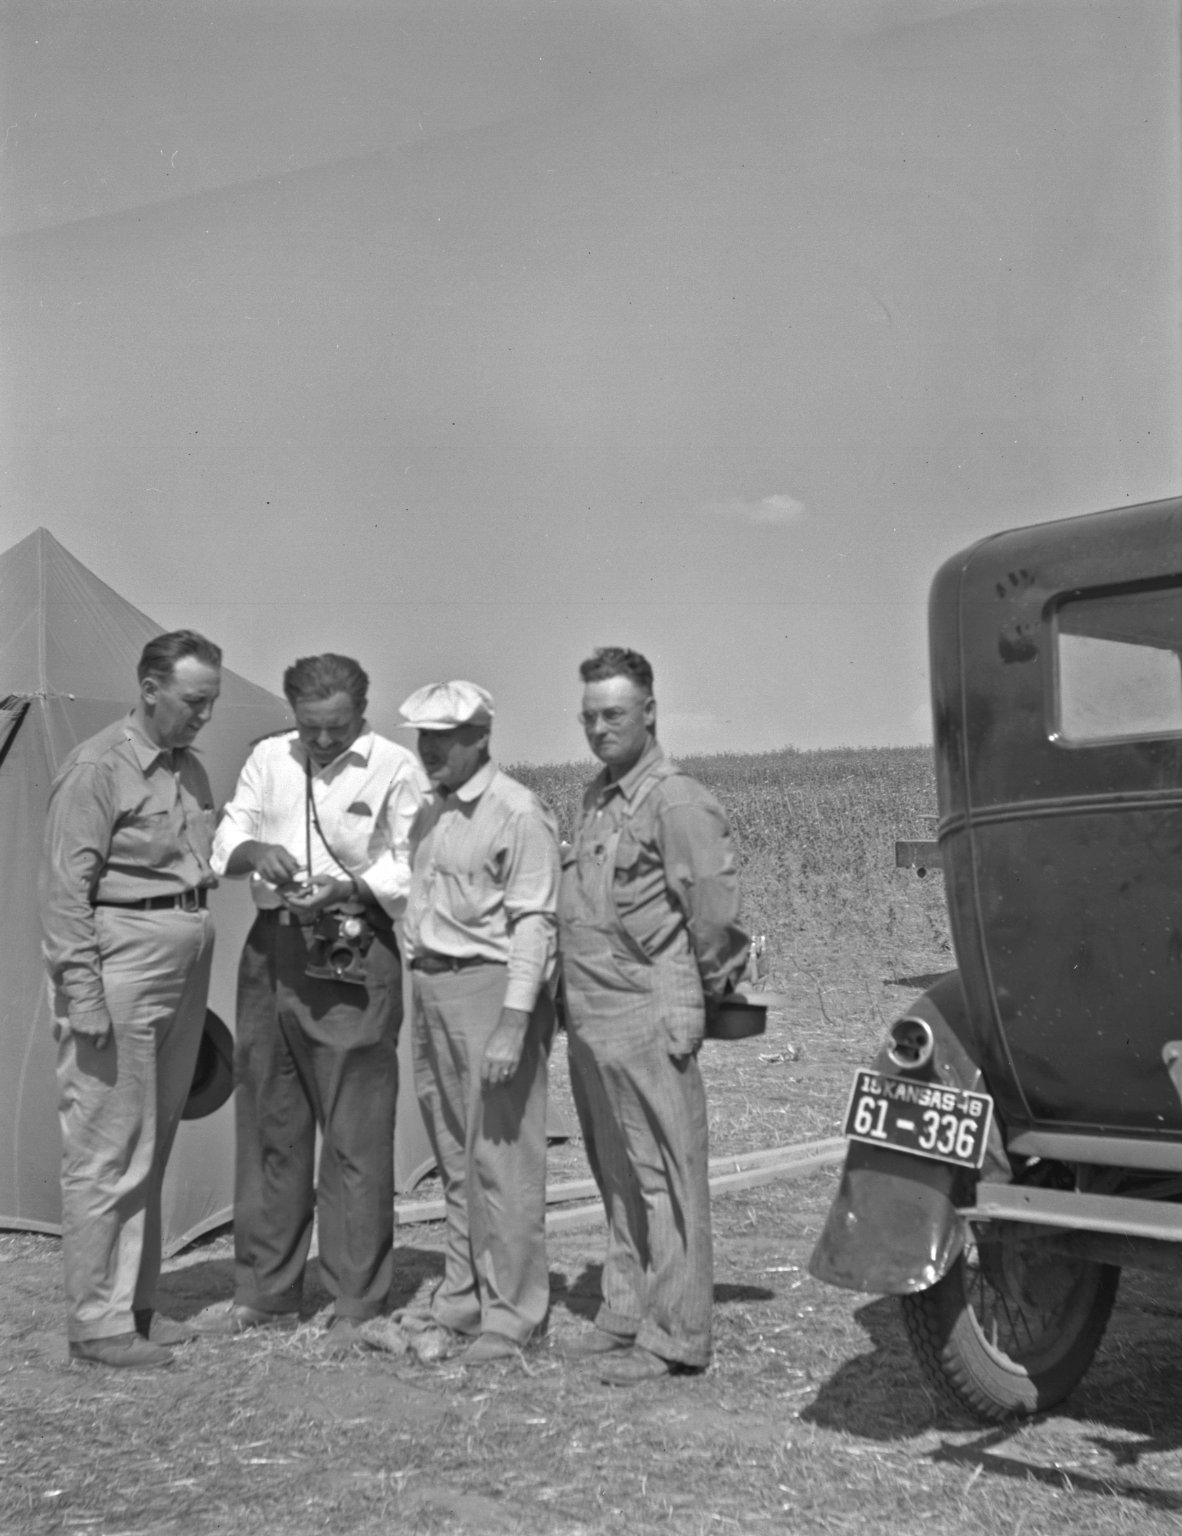 Four participants in the recovery effort for the Norton County, Kansas meteorite.